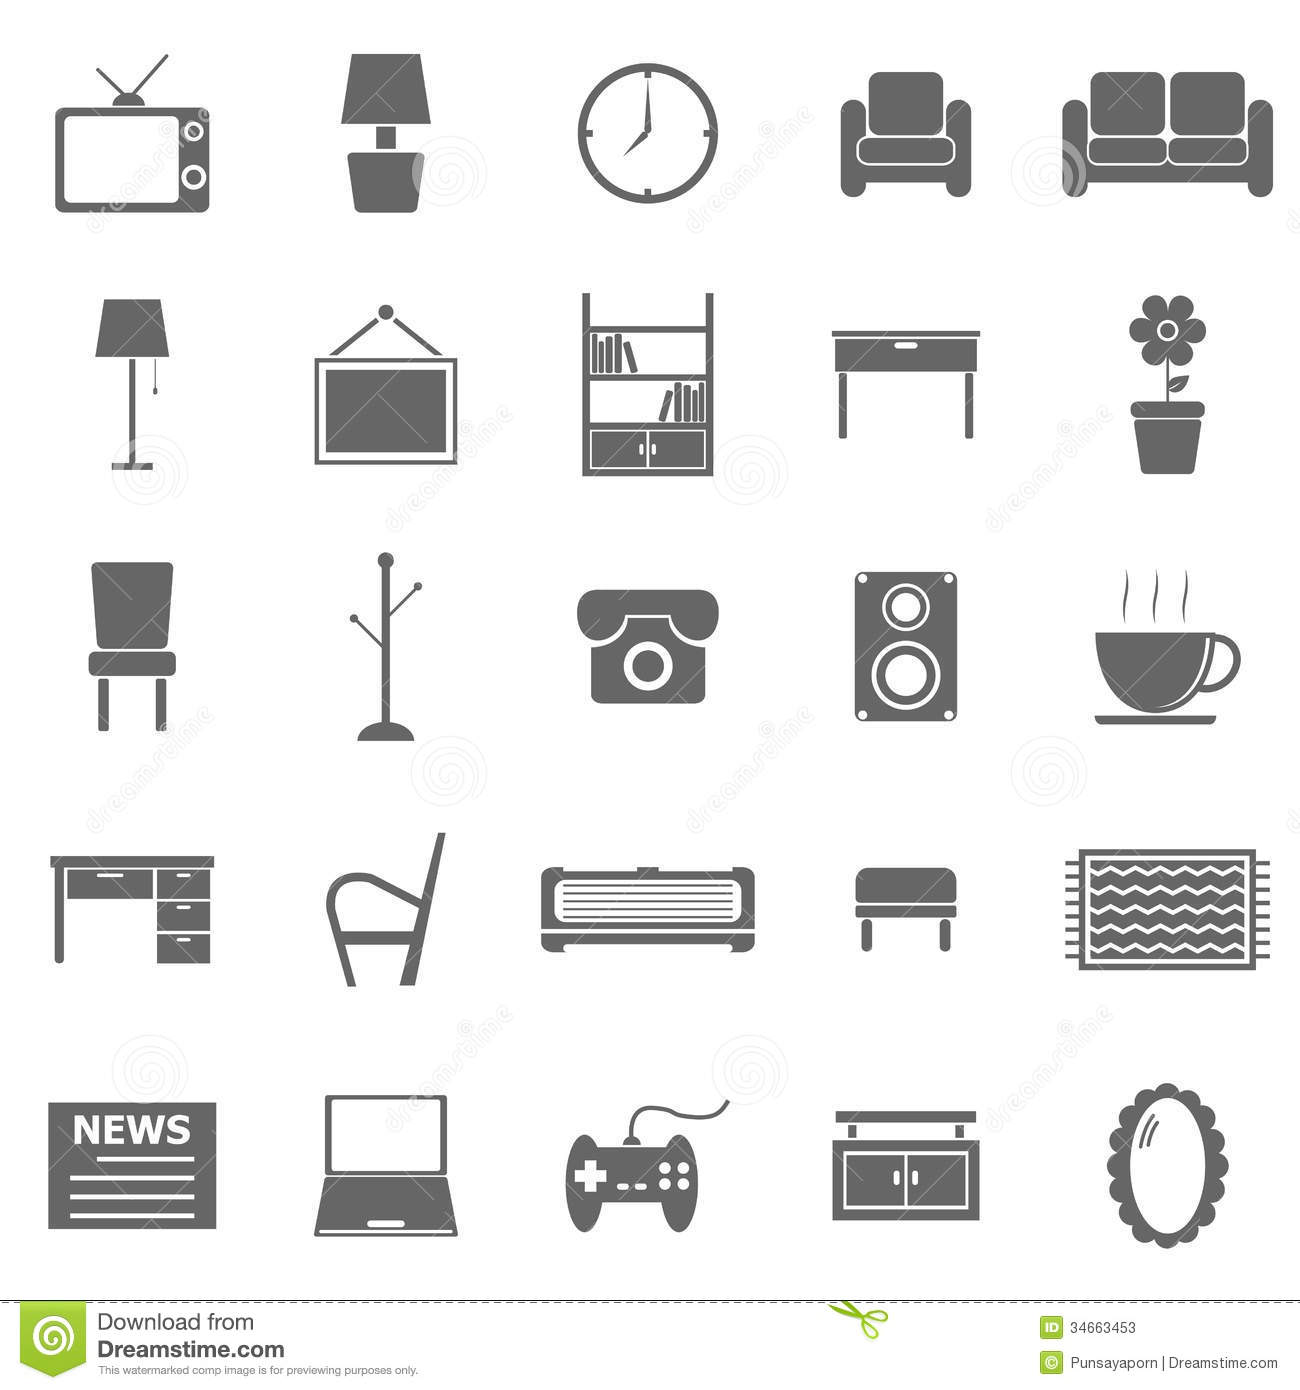 Kitchen appliances clipart - Living Room Icons On White Background Stock Photos Image 34663453